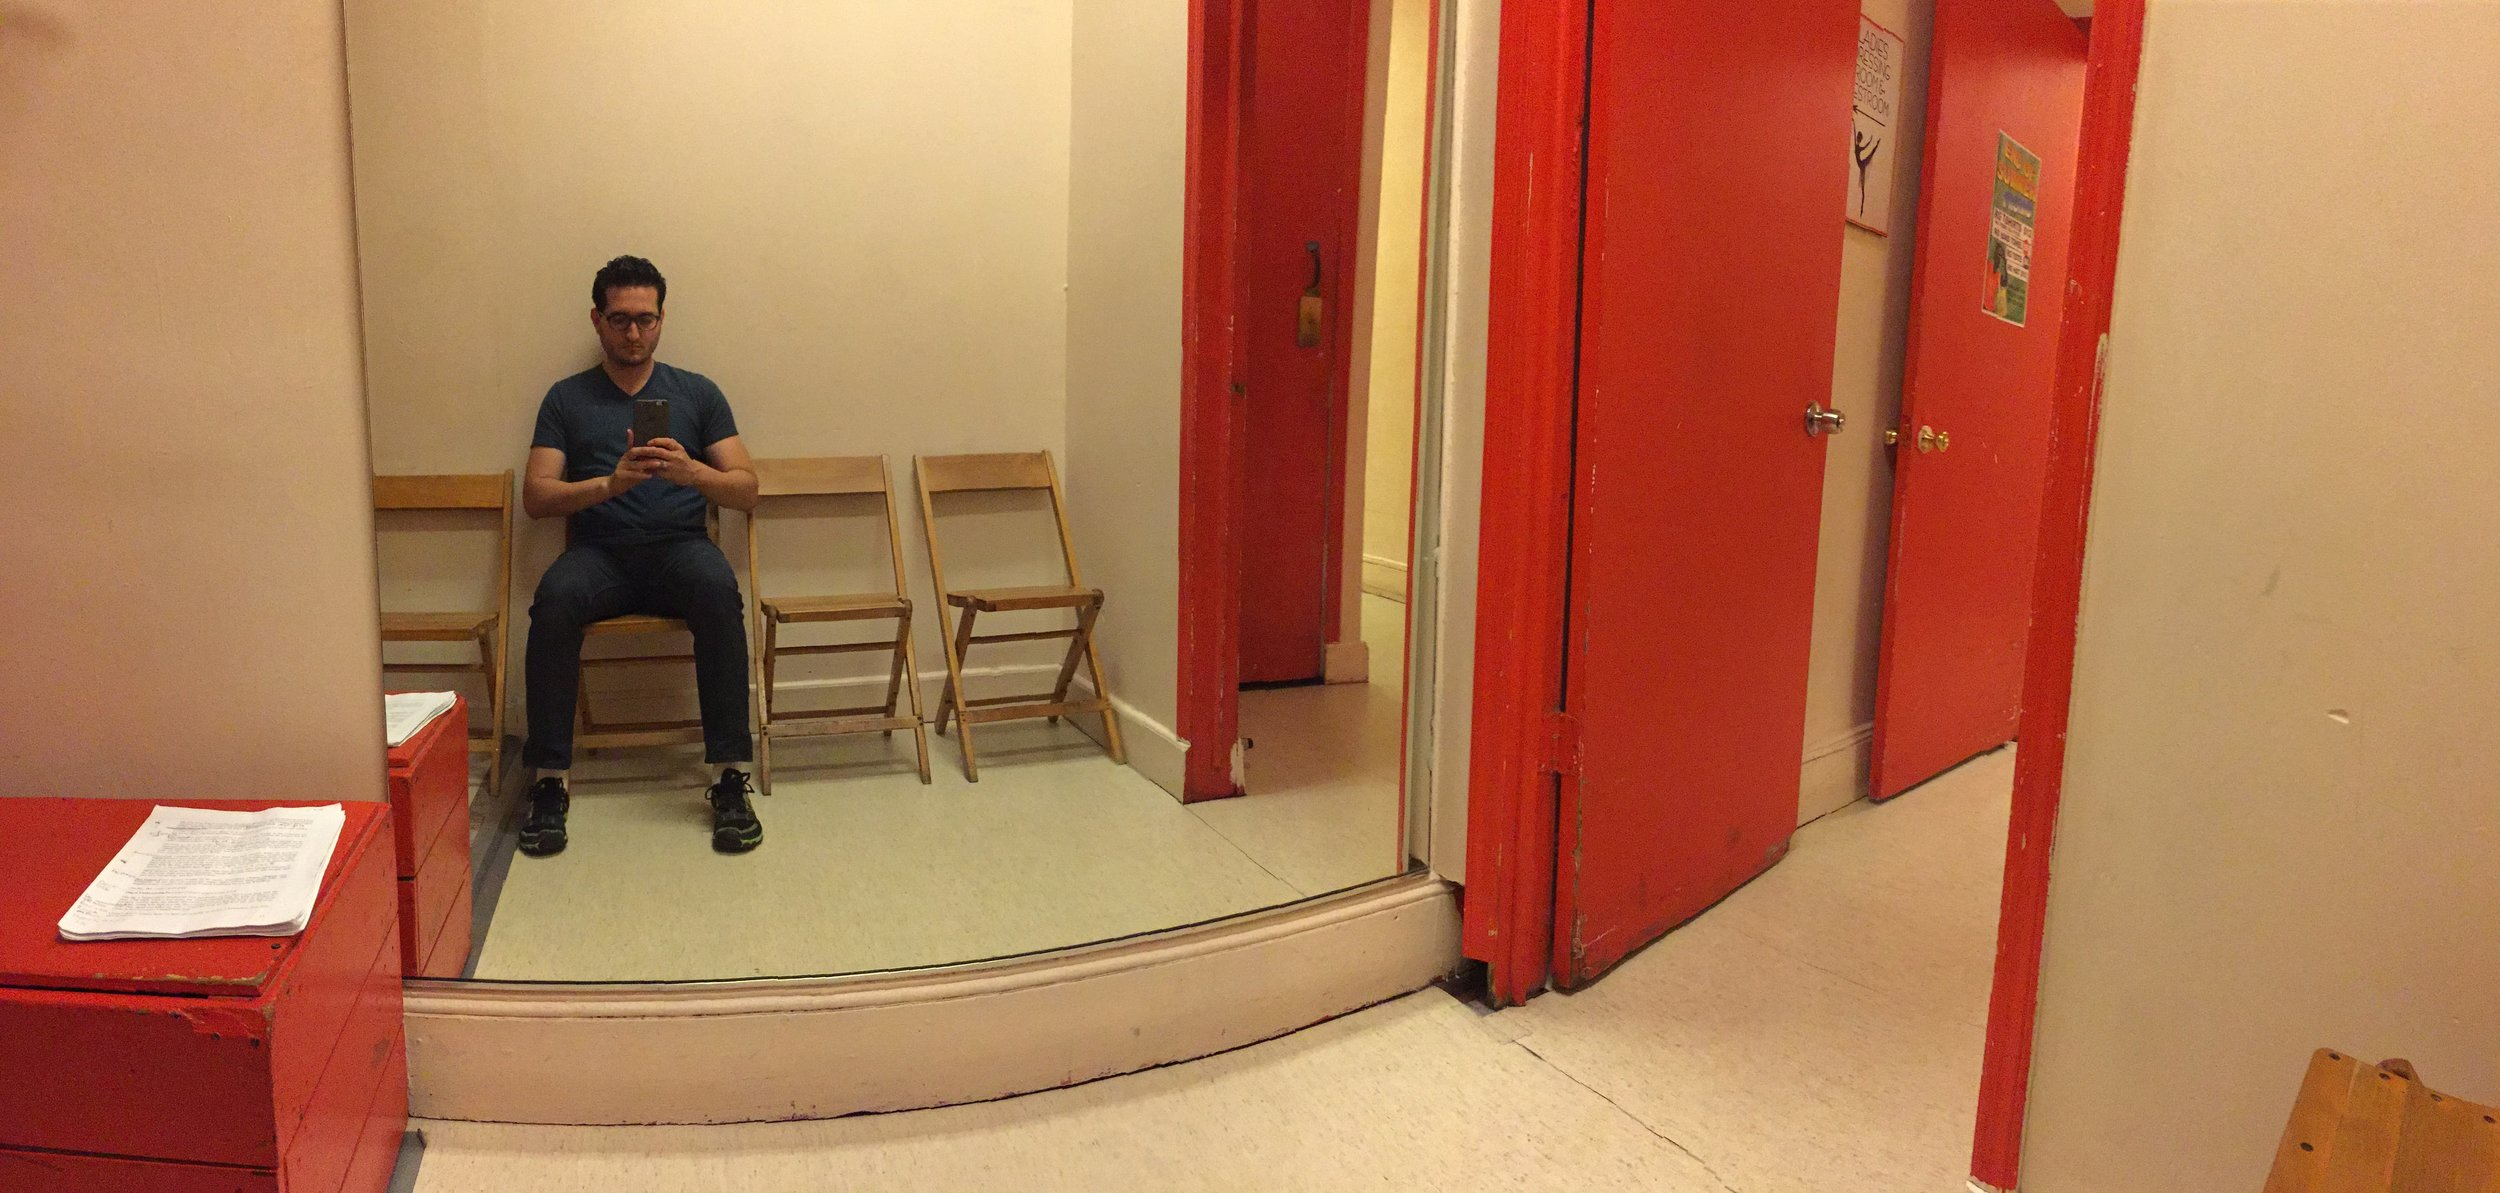 The Waiting Room at Ripley-Grier